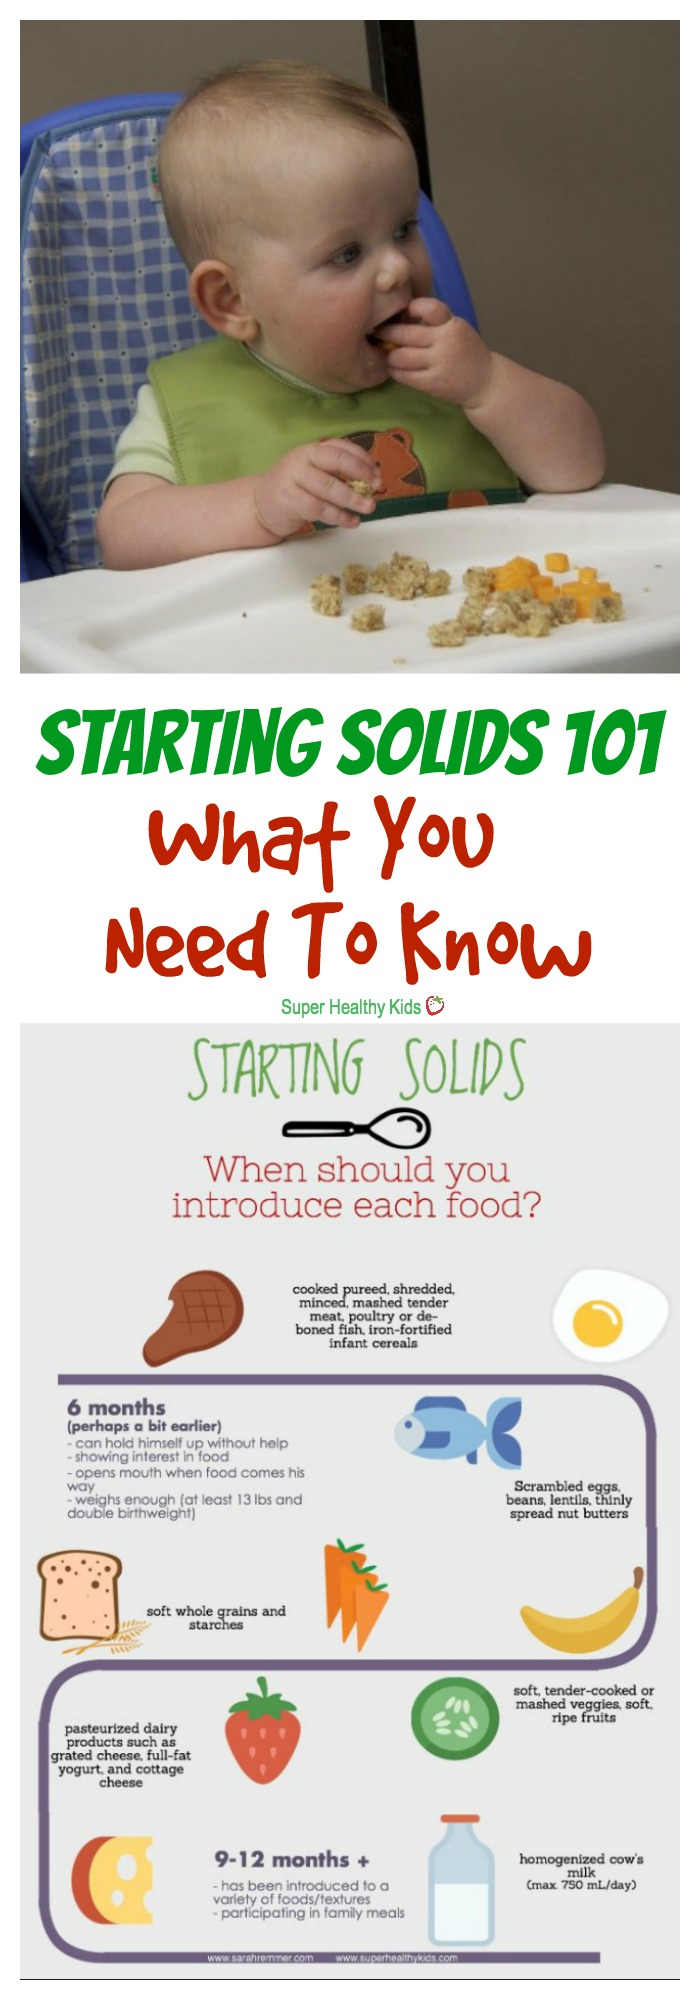 MOM TIPS - Starting Solids 101: What You Need to Know. Starting solids can seem overwhelming at first. Here's what you need to know--straight from a registered dietitian and mom. http://www.superhealthykids.com/starting-solids-101-need-know/